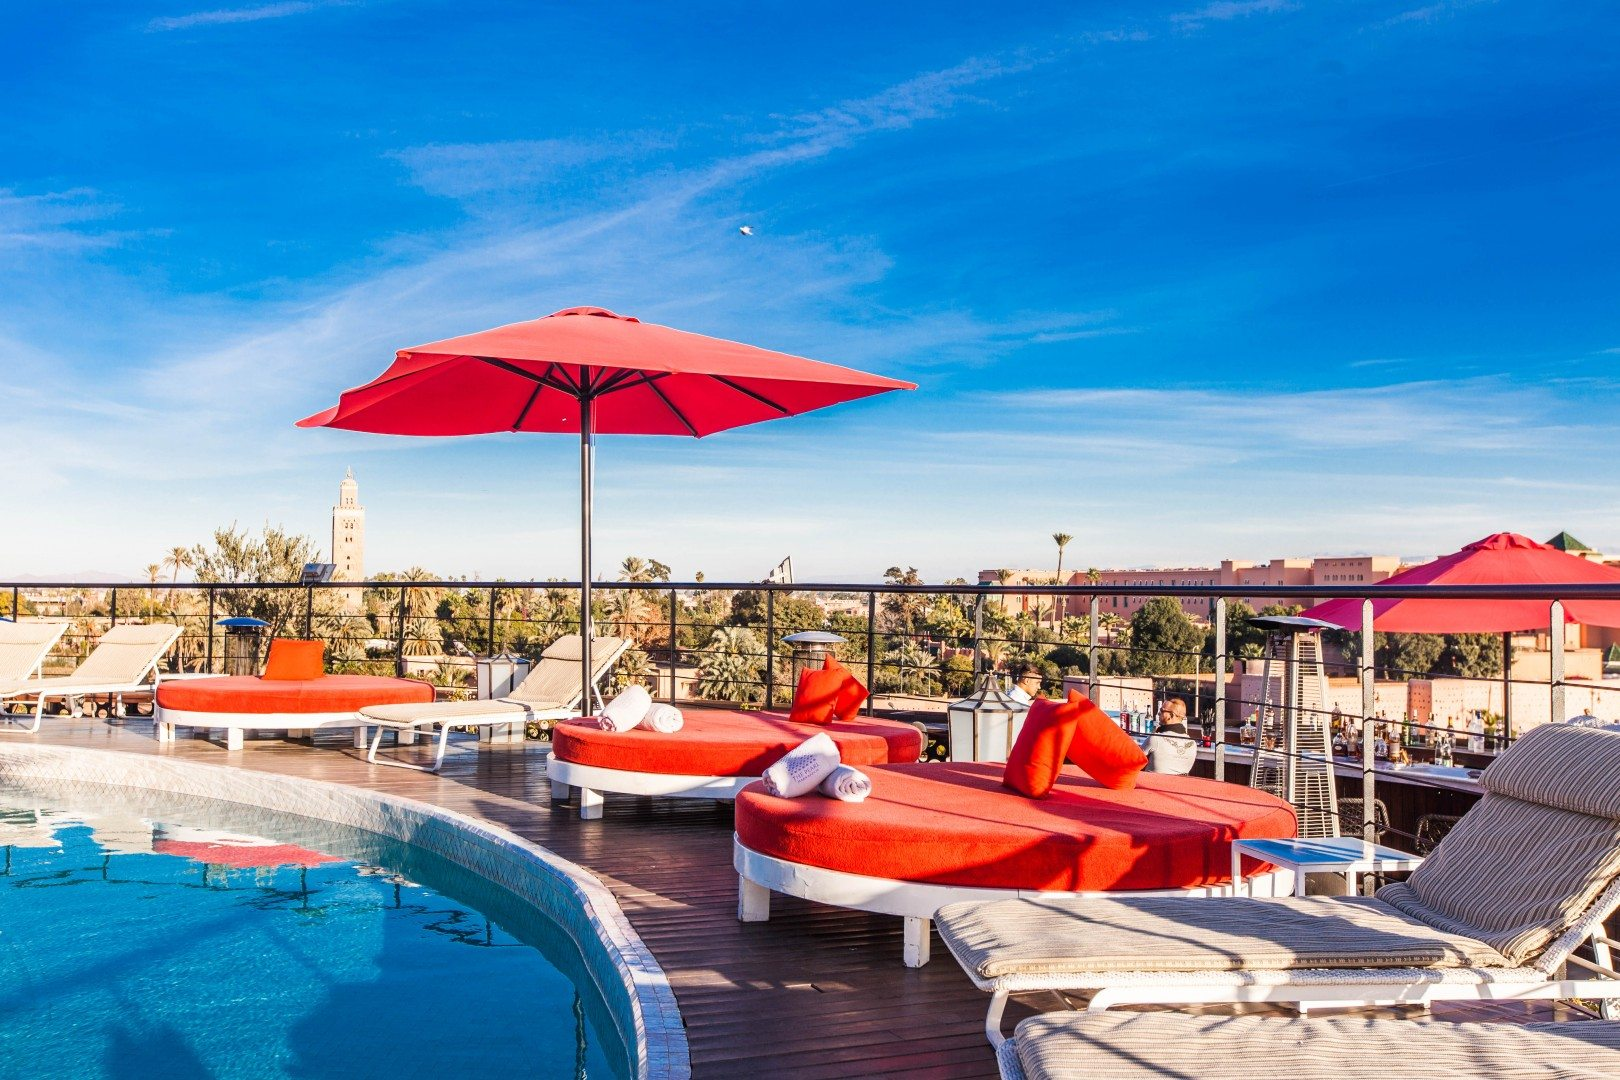 Sky Lounge, courtesy of the Pearl Marrakech Hotel